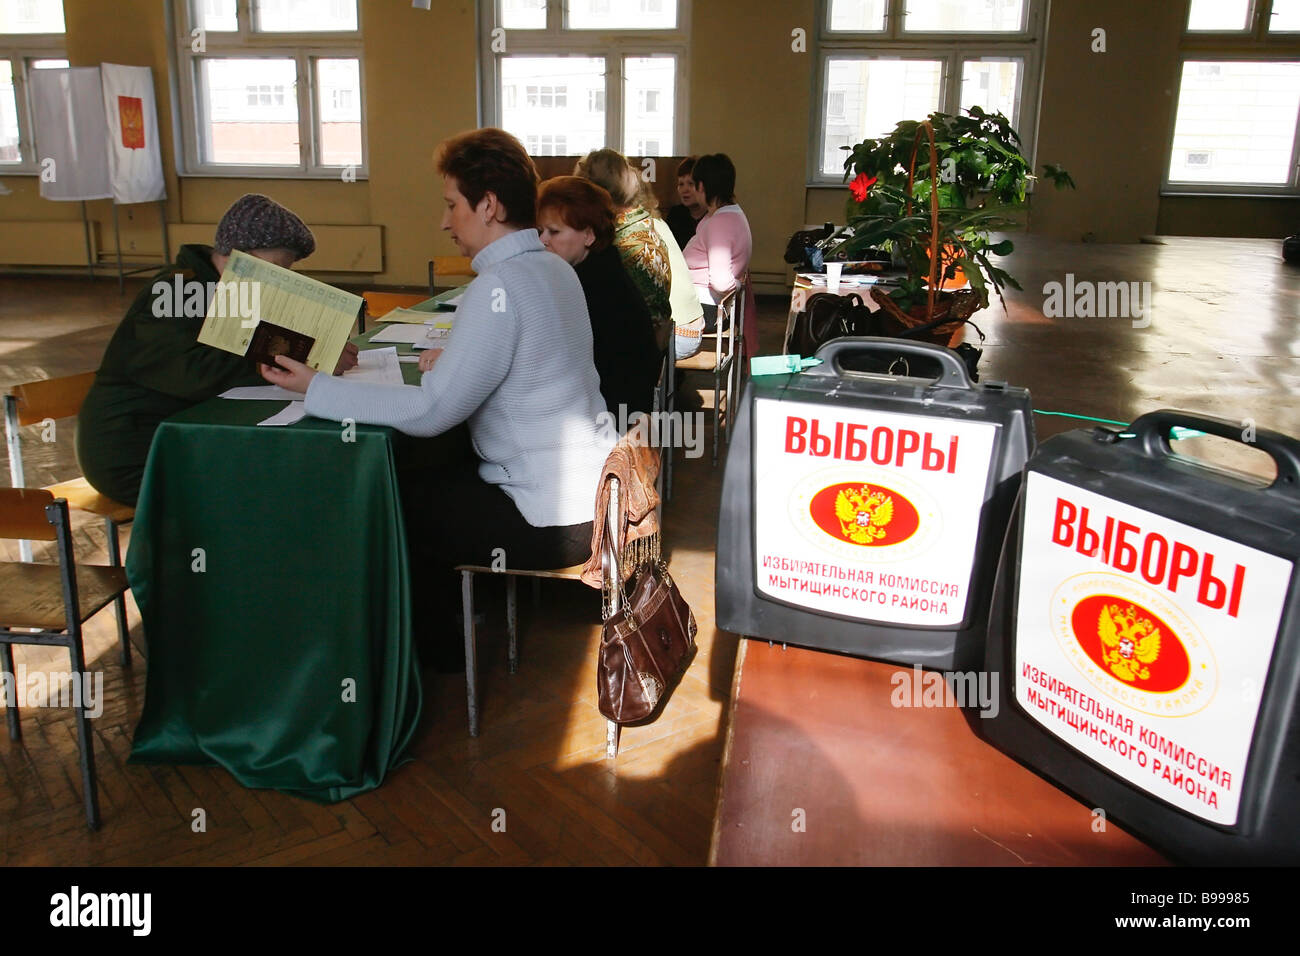 Election commission routine at the Mytishchi district polling station - Stock Image